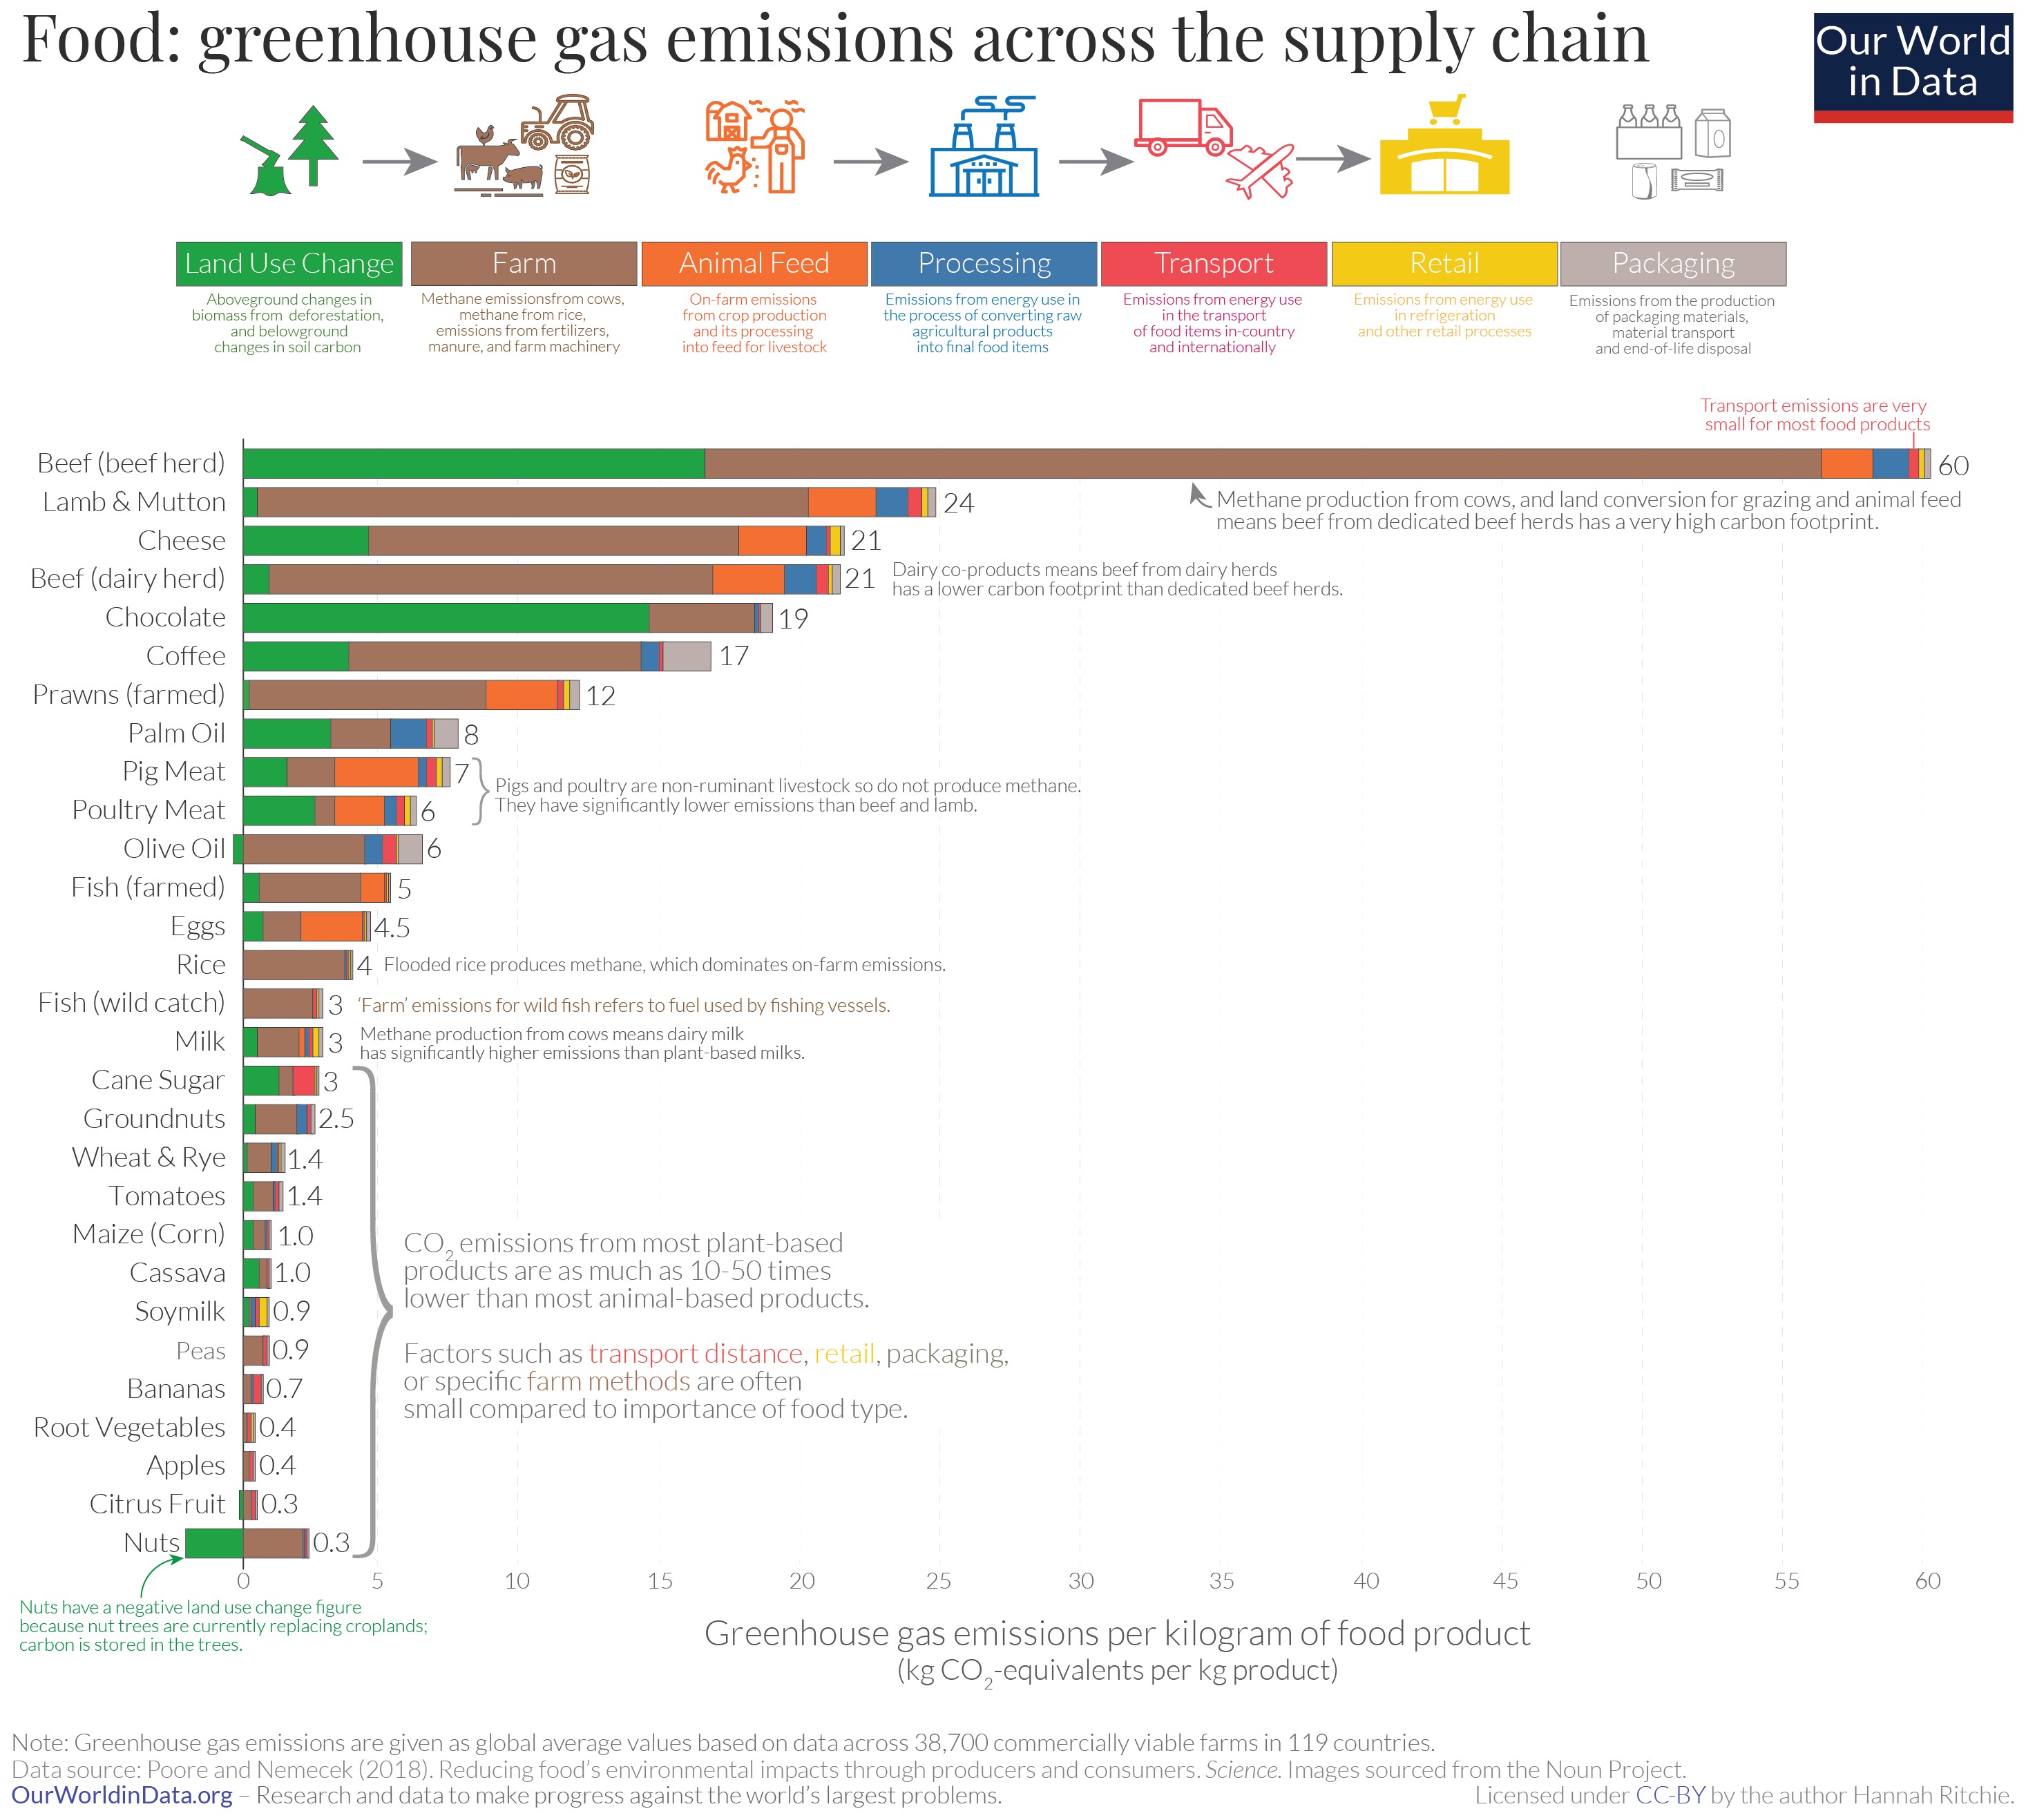 Food: greenhouse gas emissions across the suply chain